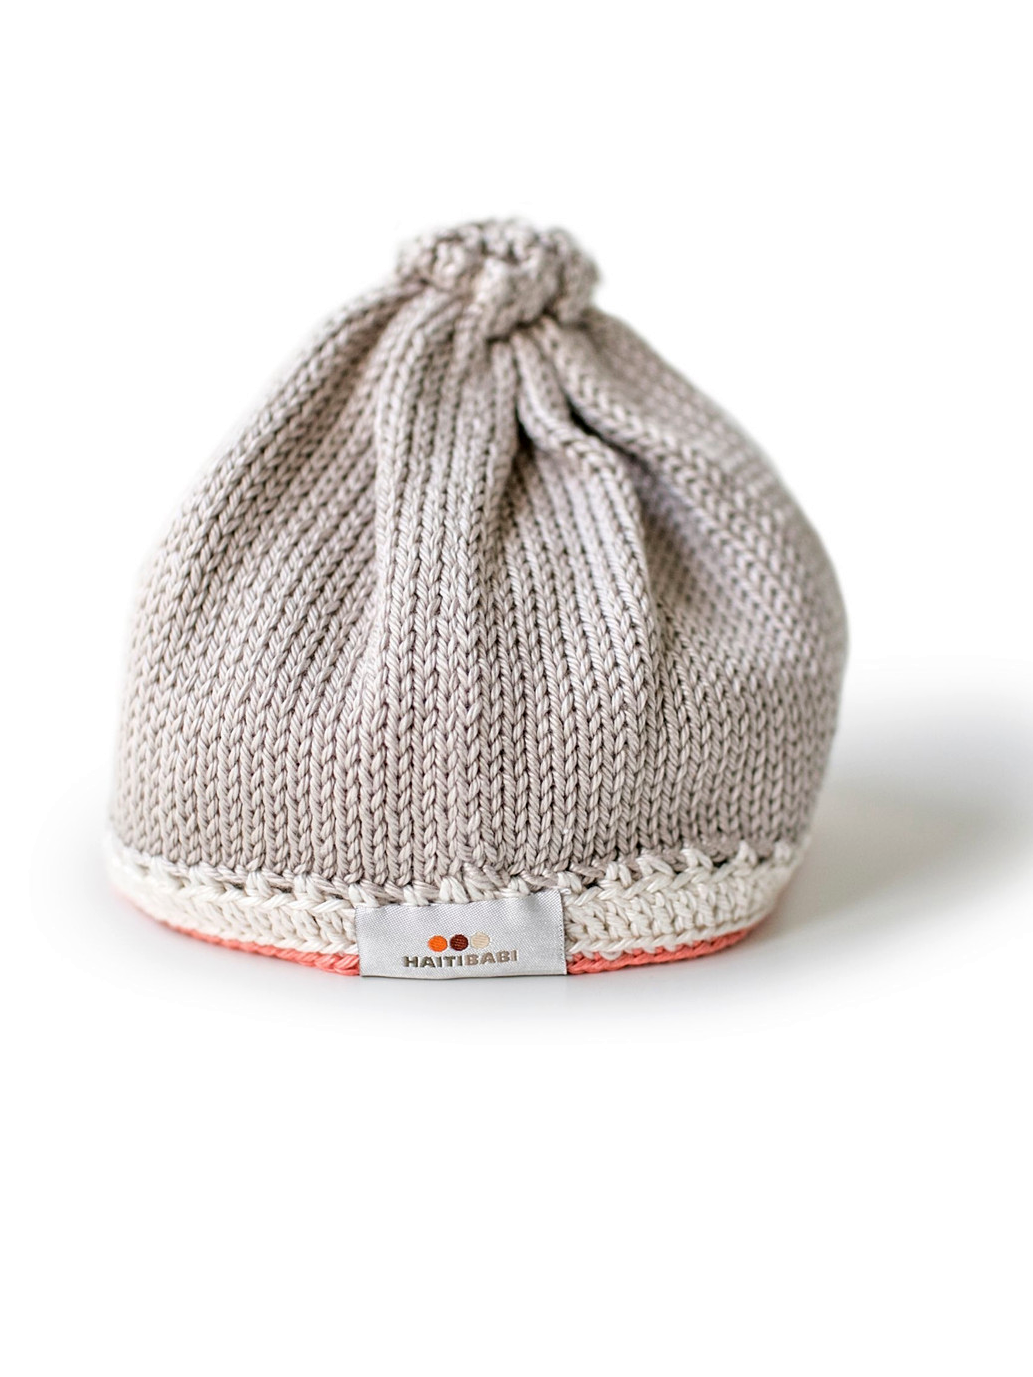 Hand-knit Pima Cotton Baby Hat (taupe coral)